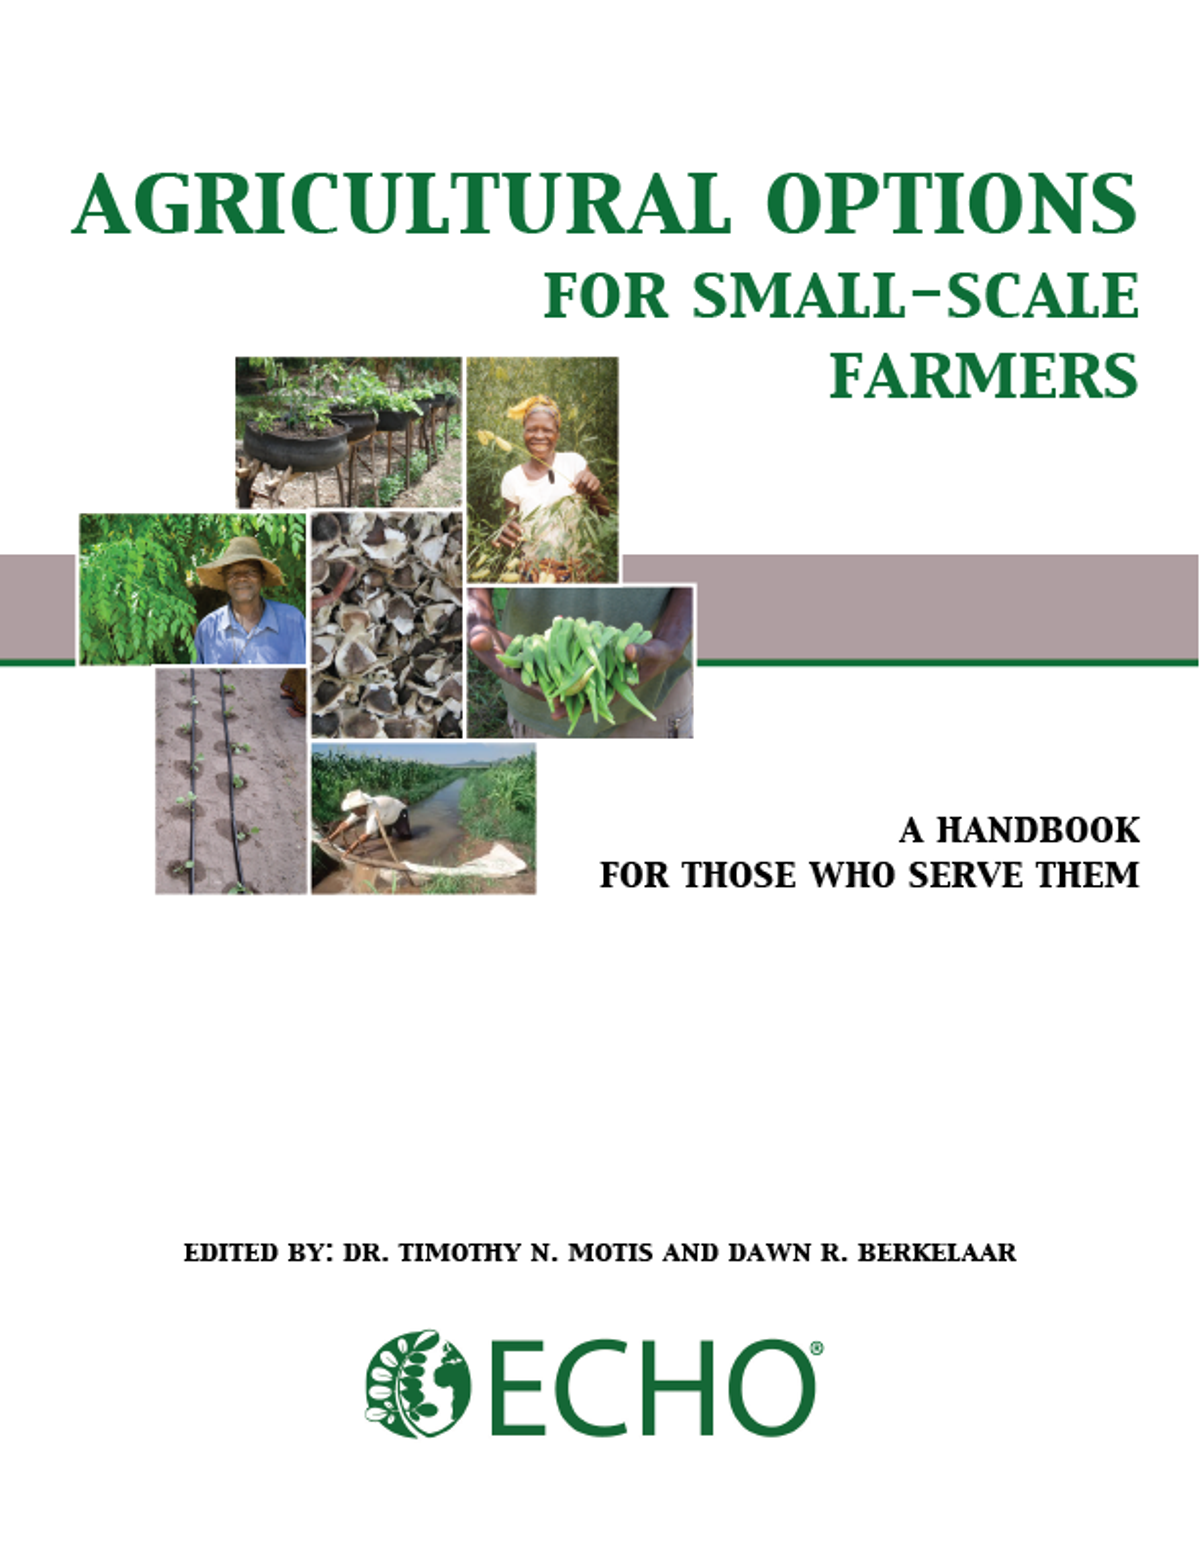 Ag Options front cover